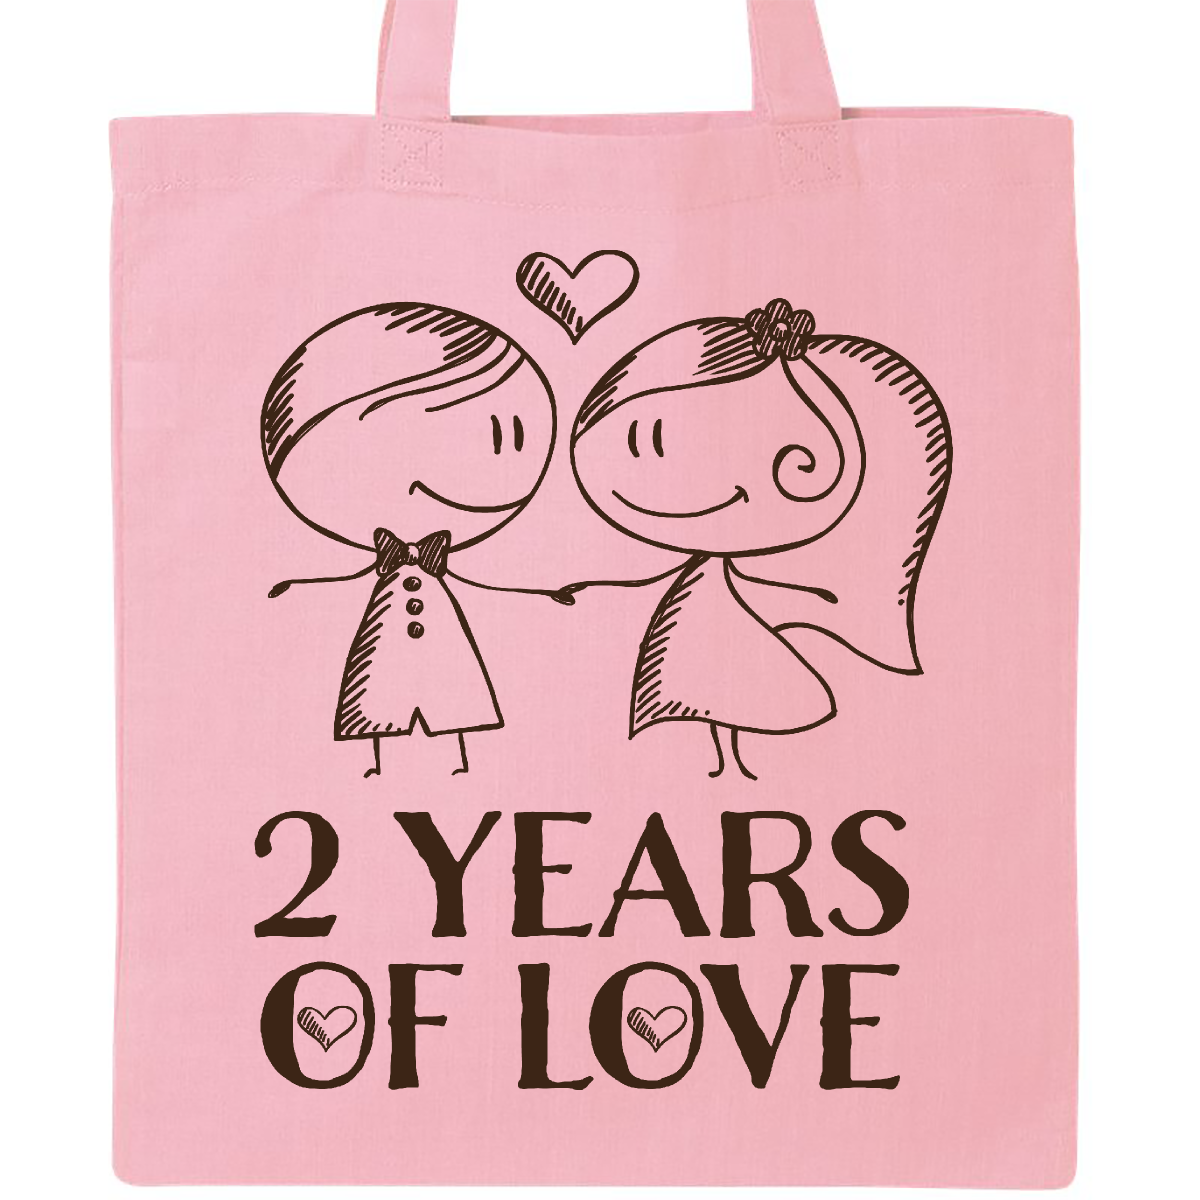 2nd Anniversary couples line drawing Tote Bag Pink $12.99 www ...